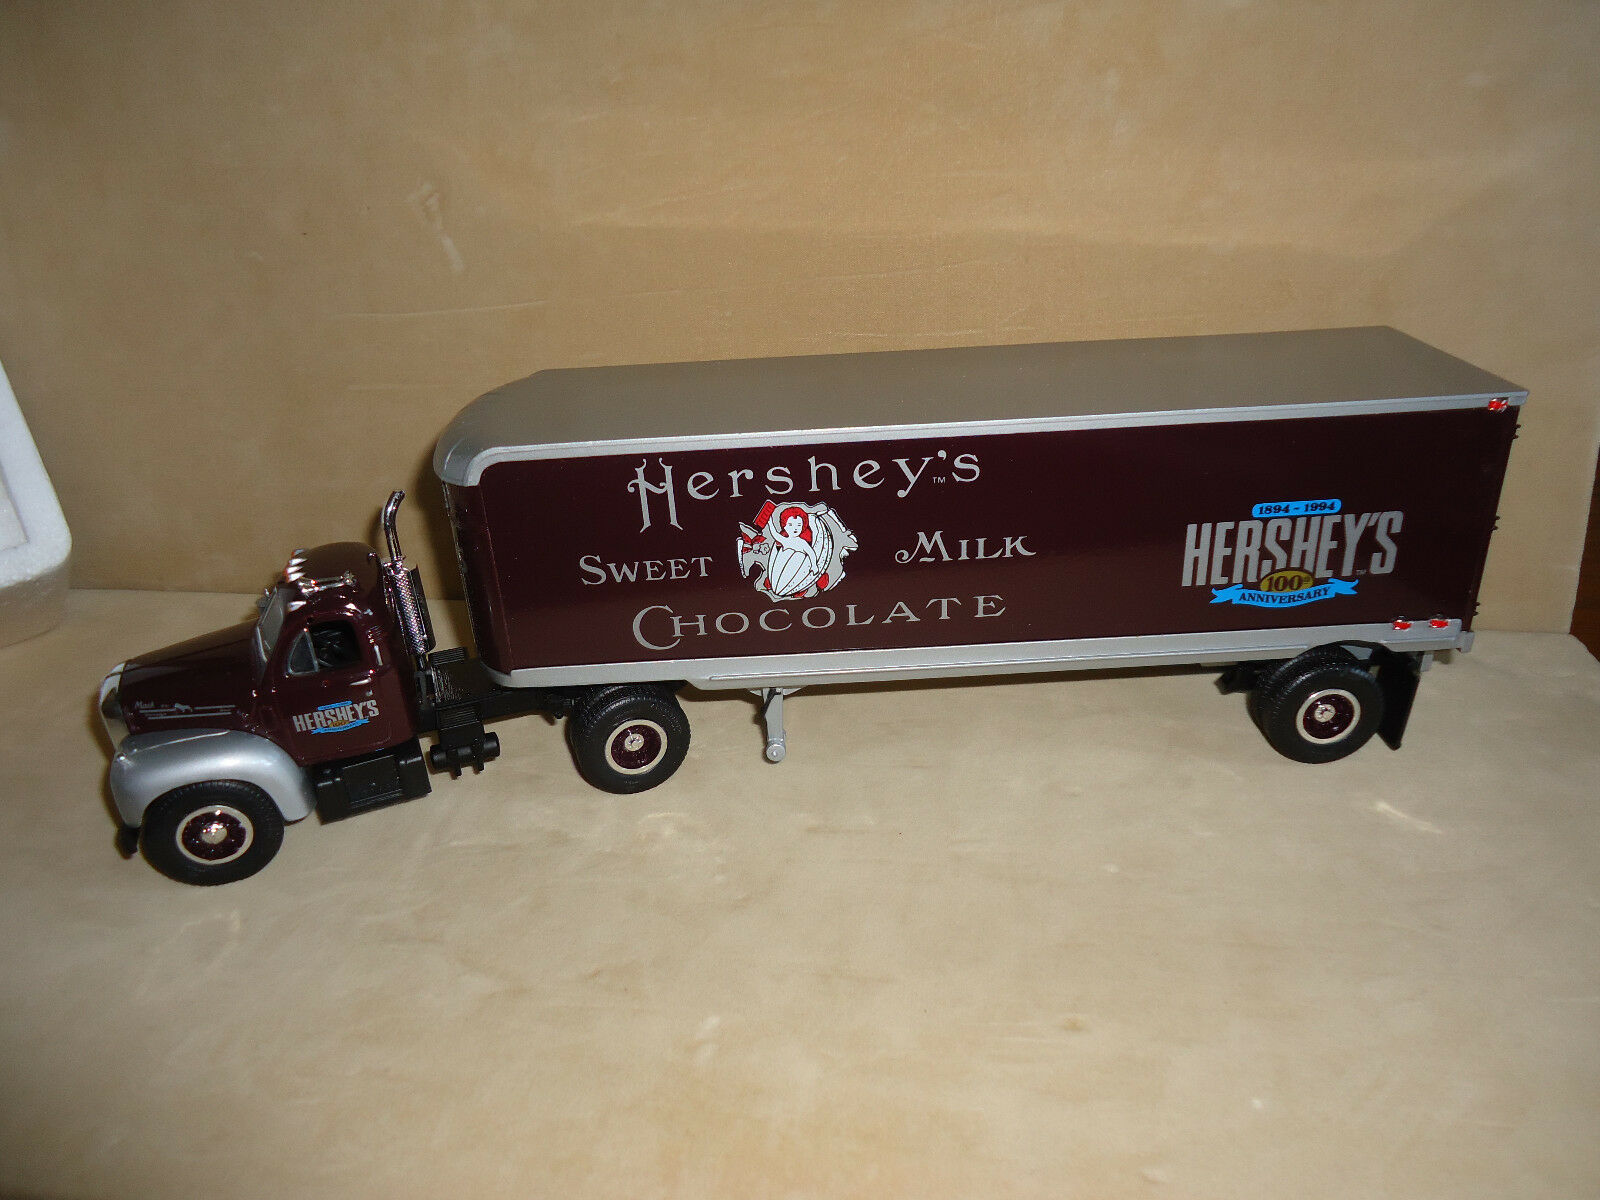 Hershey Aniversario  1 First Gear 2018 B61 Mack First Gear  19-1288